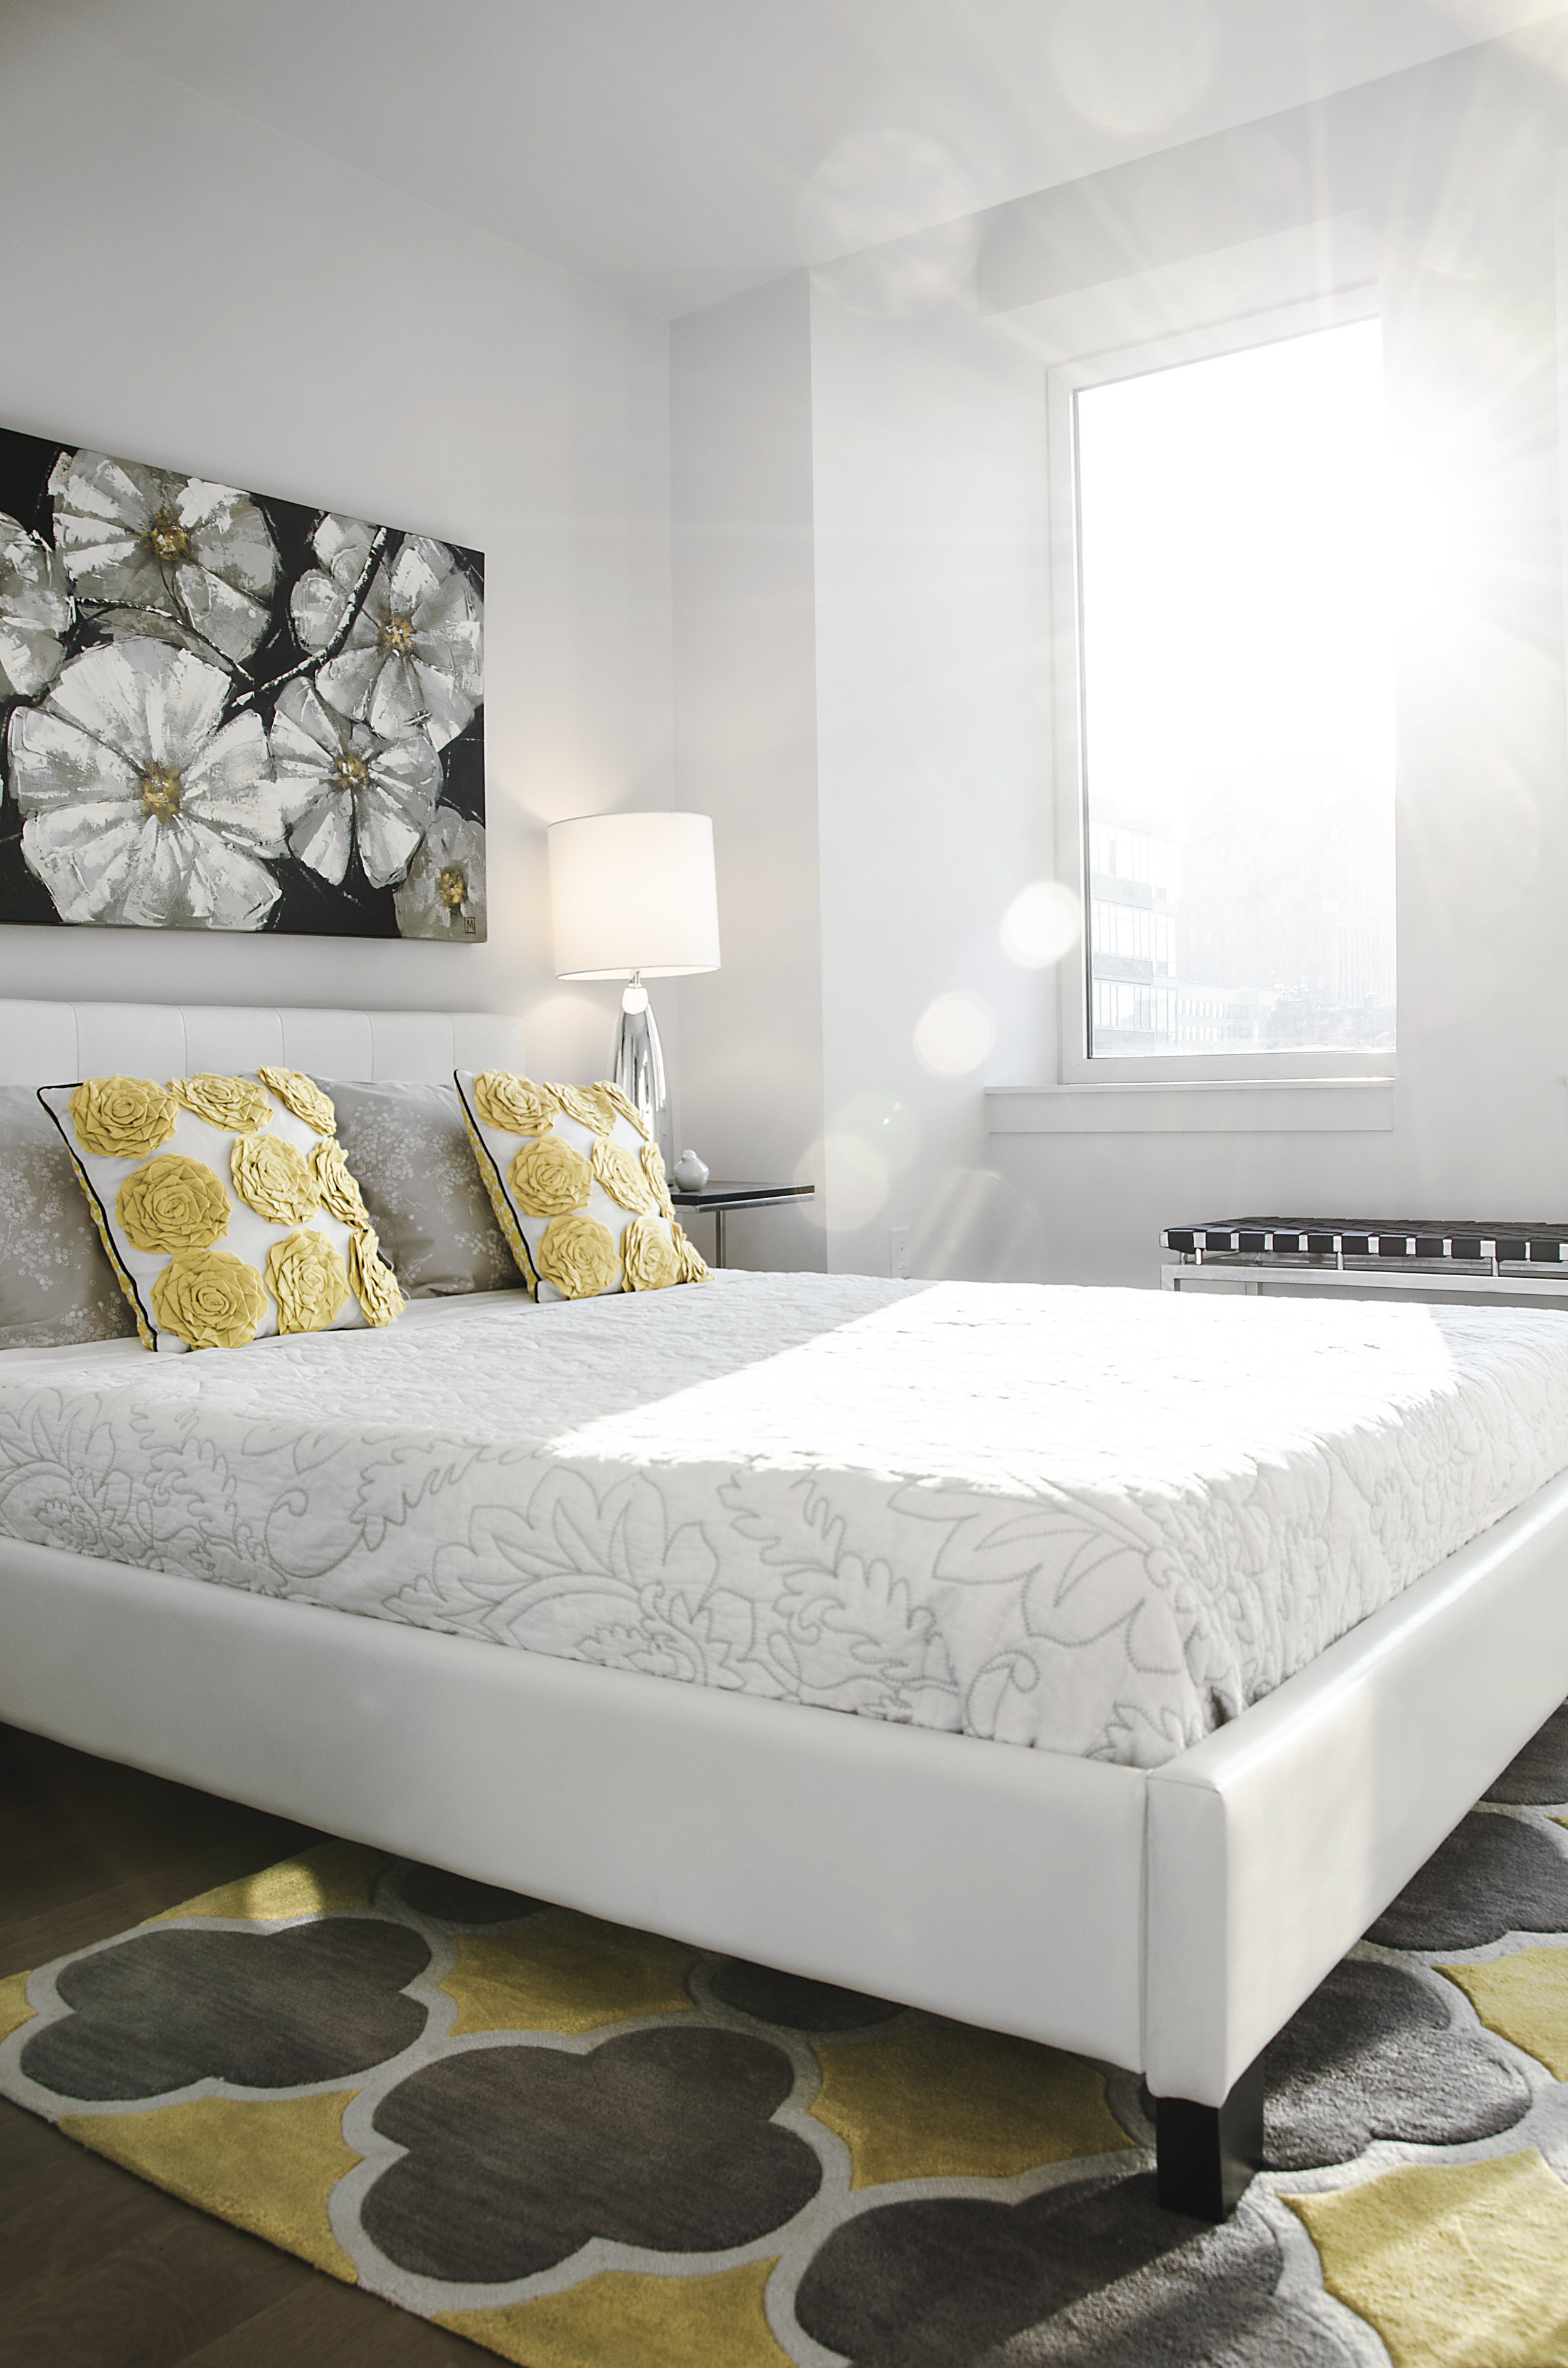 White Bedroom by Andrew Werner.jpg